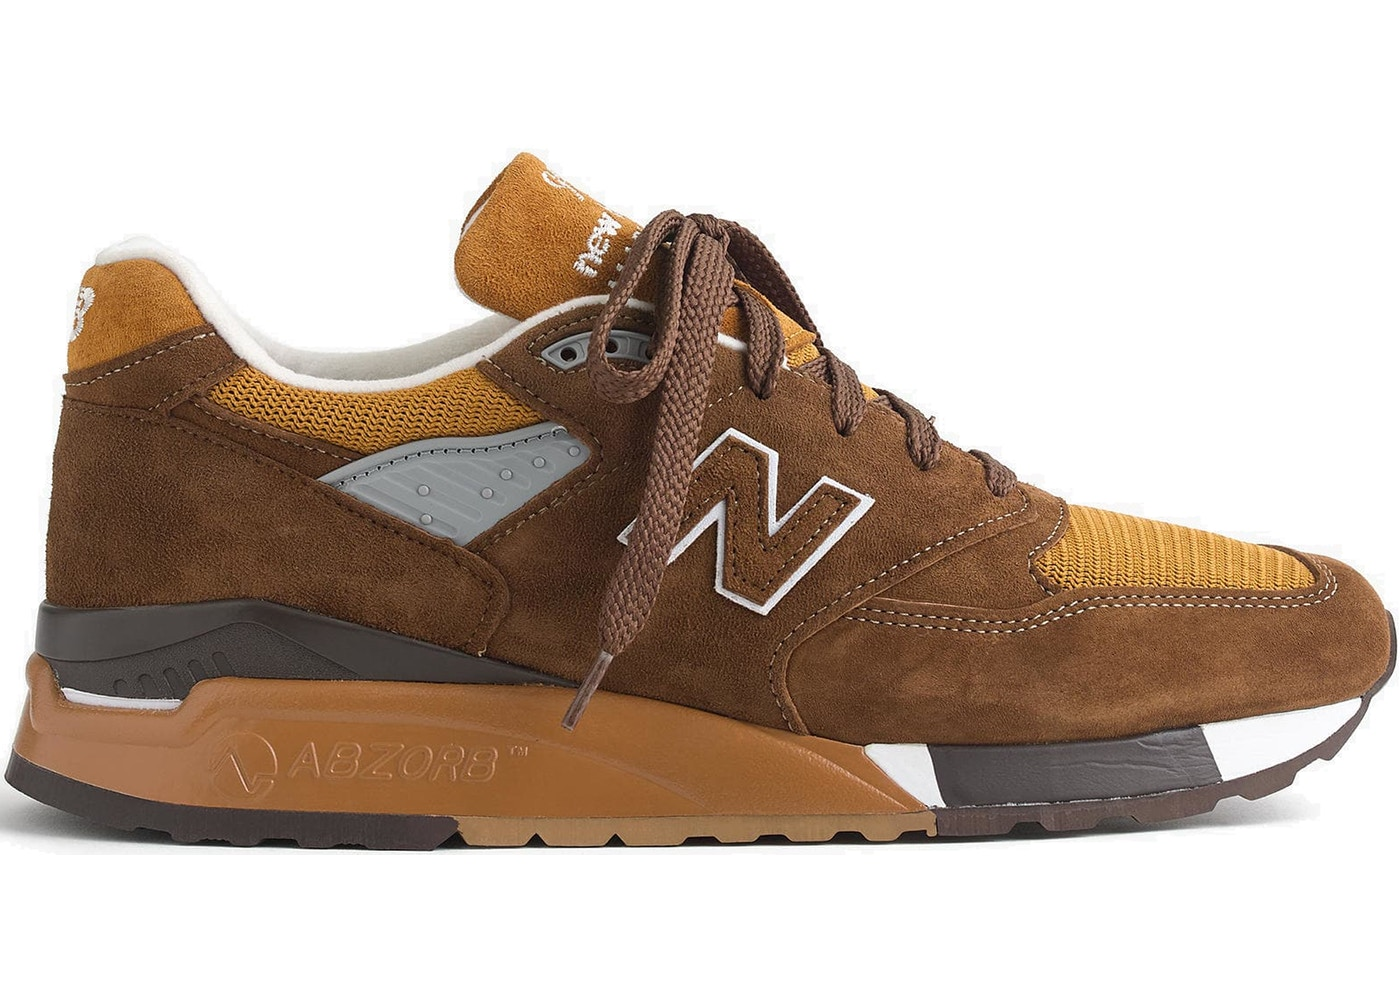 competitive price b7e1a 4fb24 New Balance 998 J. Crew Death Valley